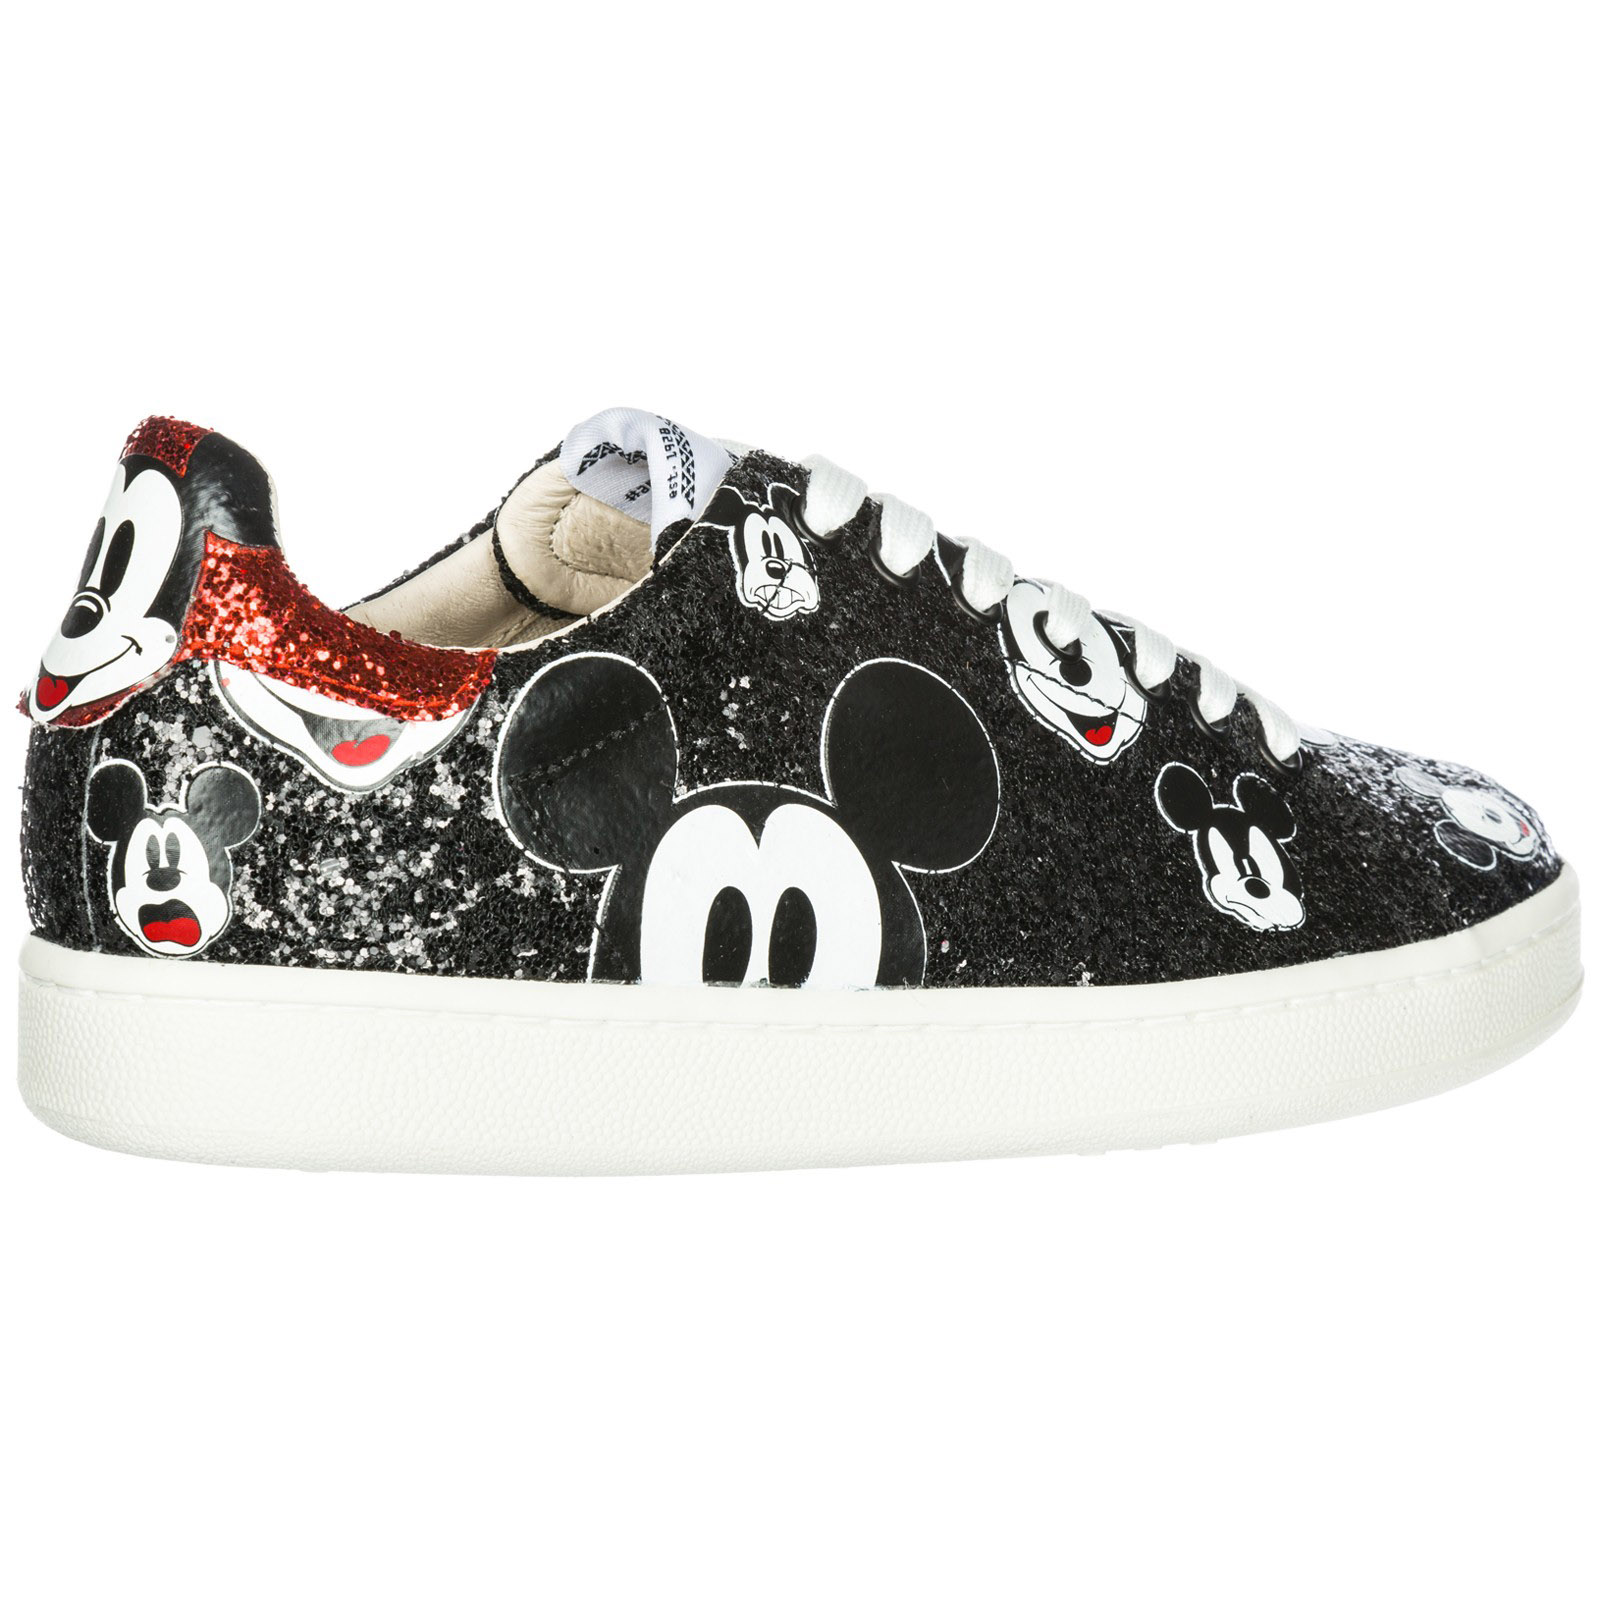 Chaussures Femme MOA Master of Arts DISNEY Baskets